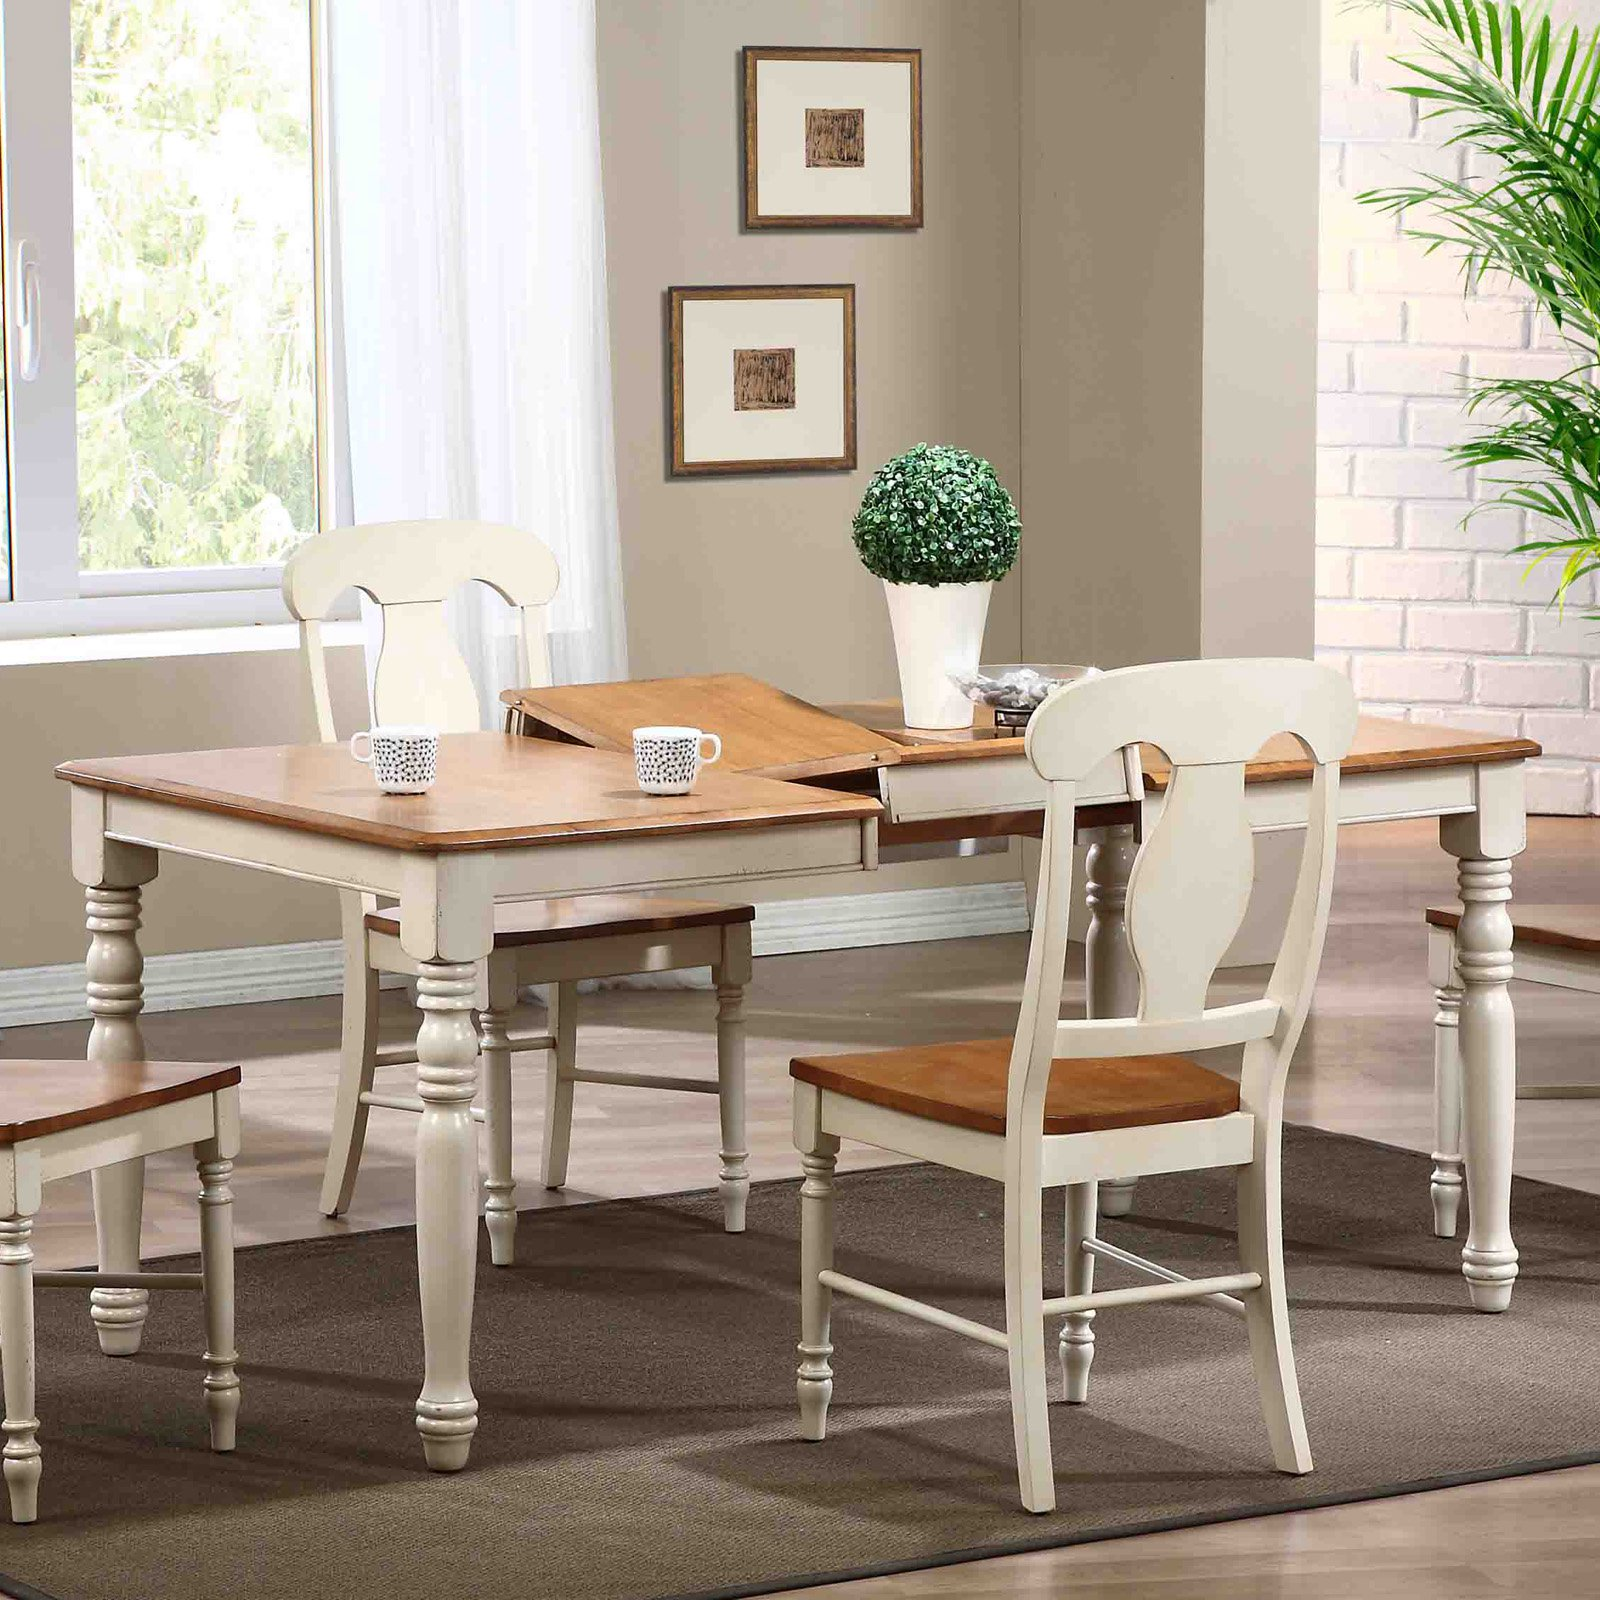 Iconic Furniture Turned Leg Rectangular Dining Table - Biscotti / Caramel